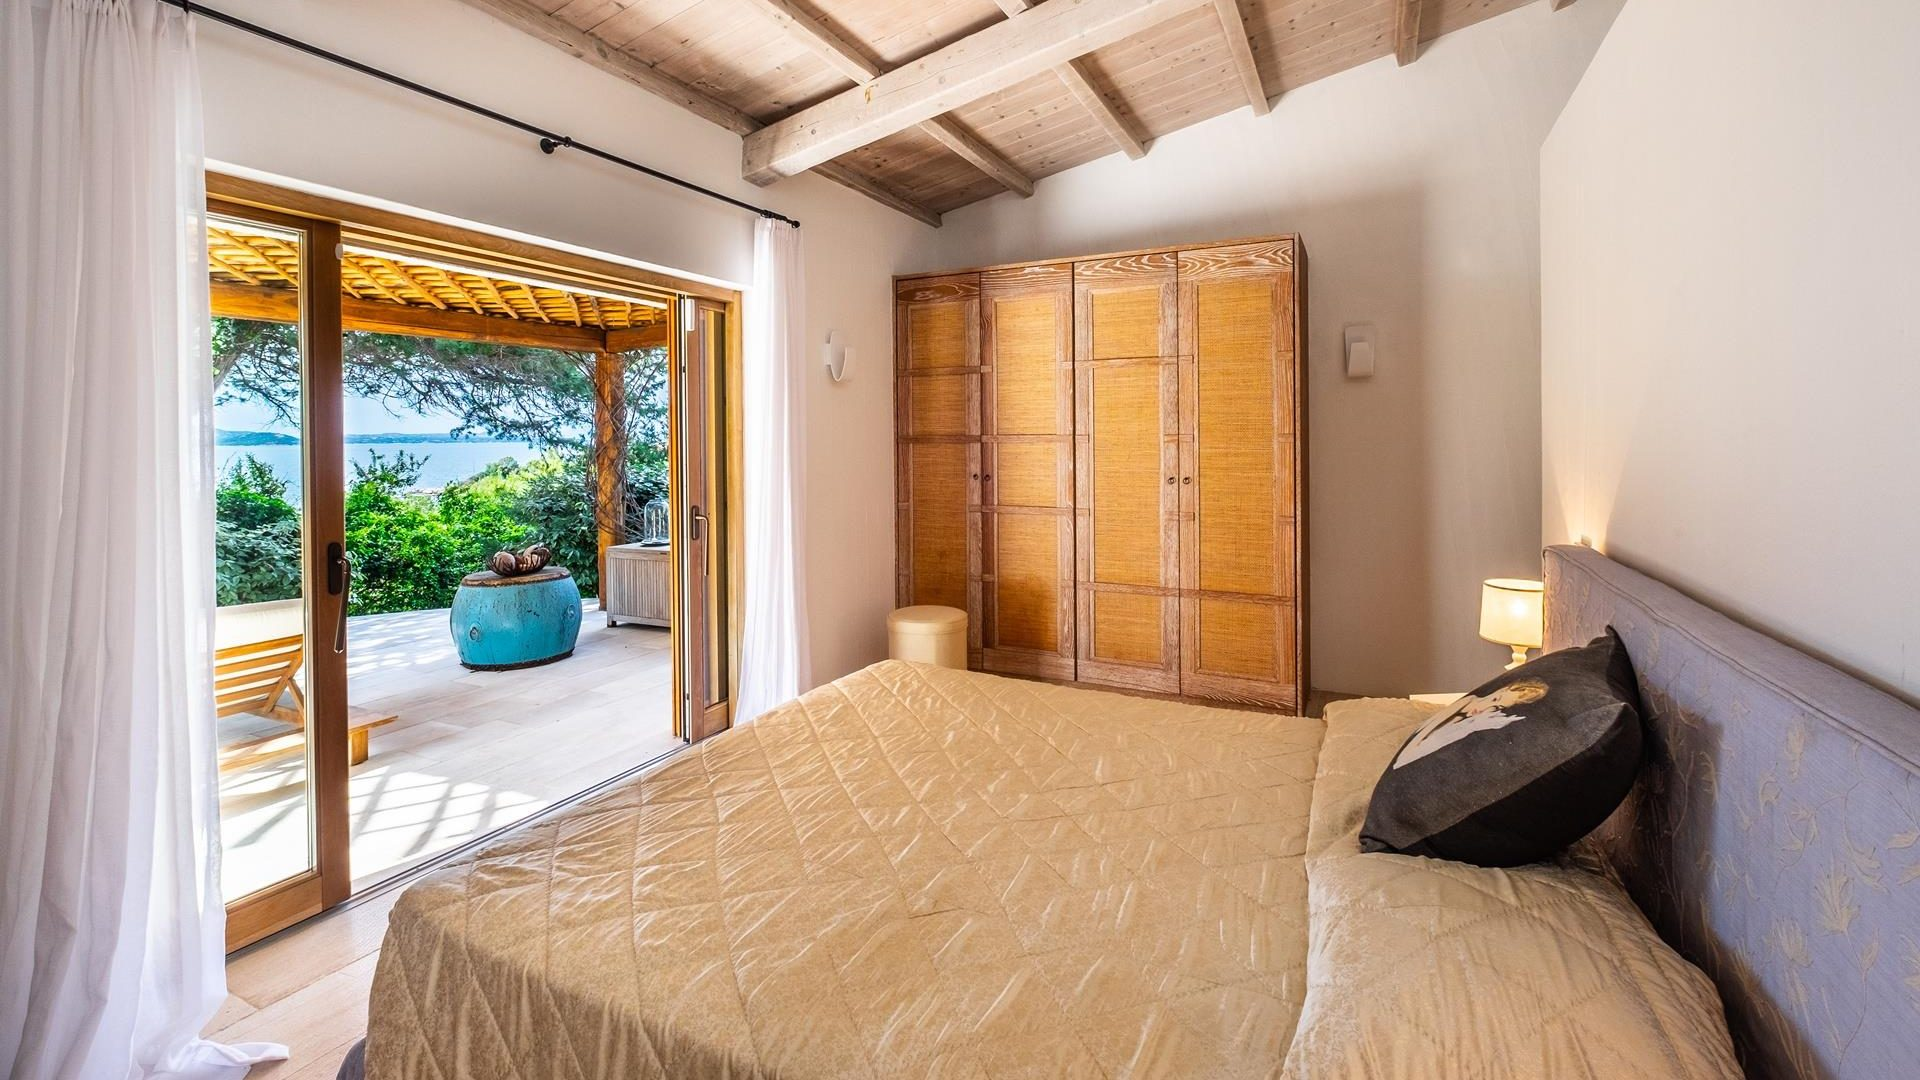 Bedroom with views in Sardinia